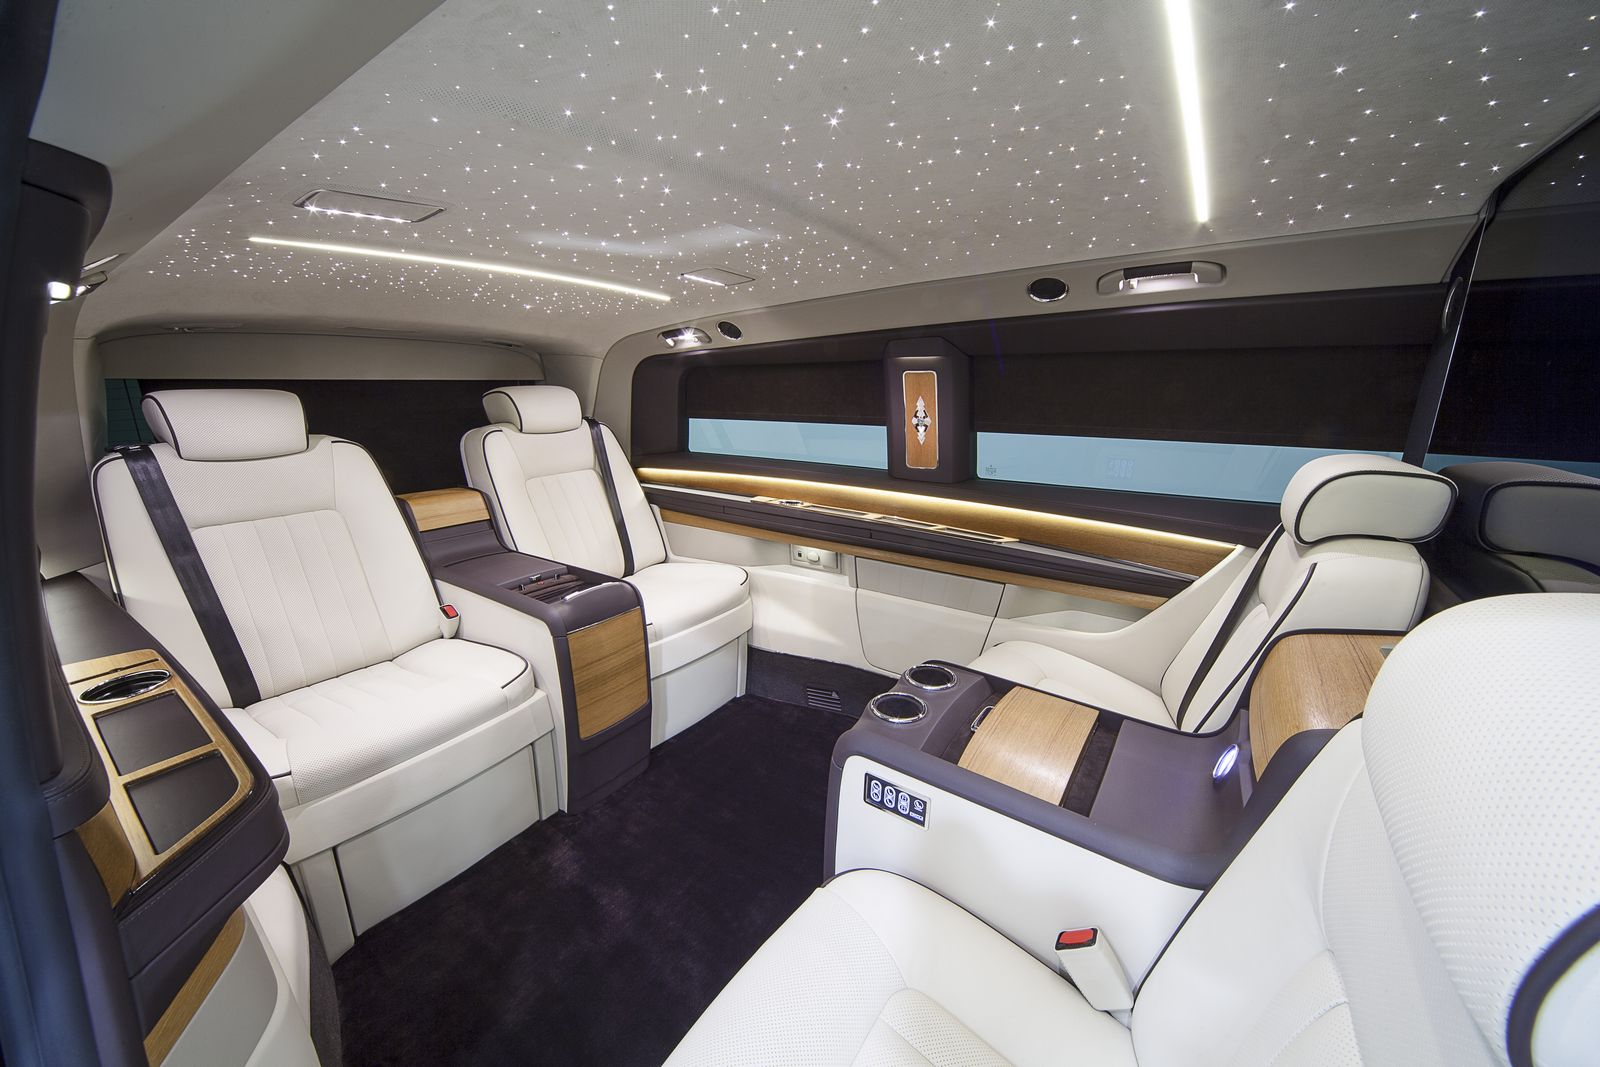 Okcu S Mercedes V Class Is A Private Jet On Wheels